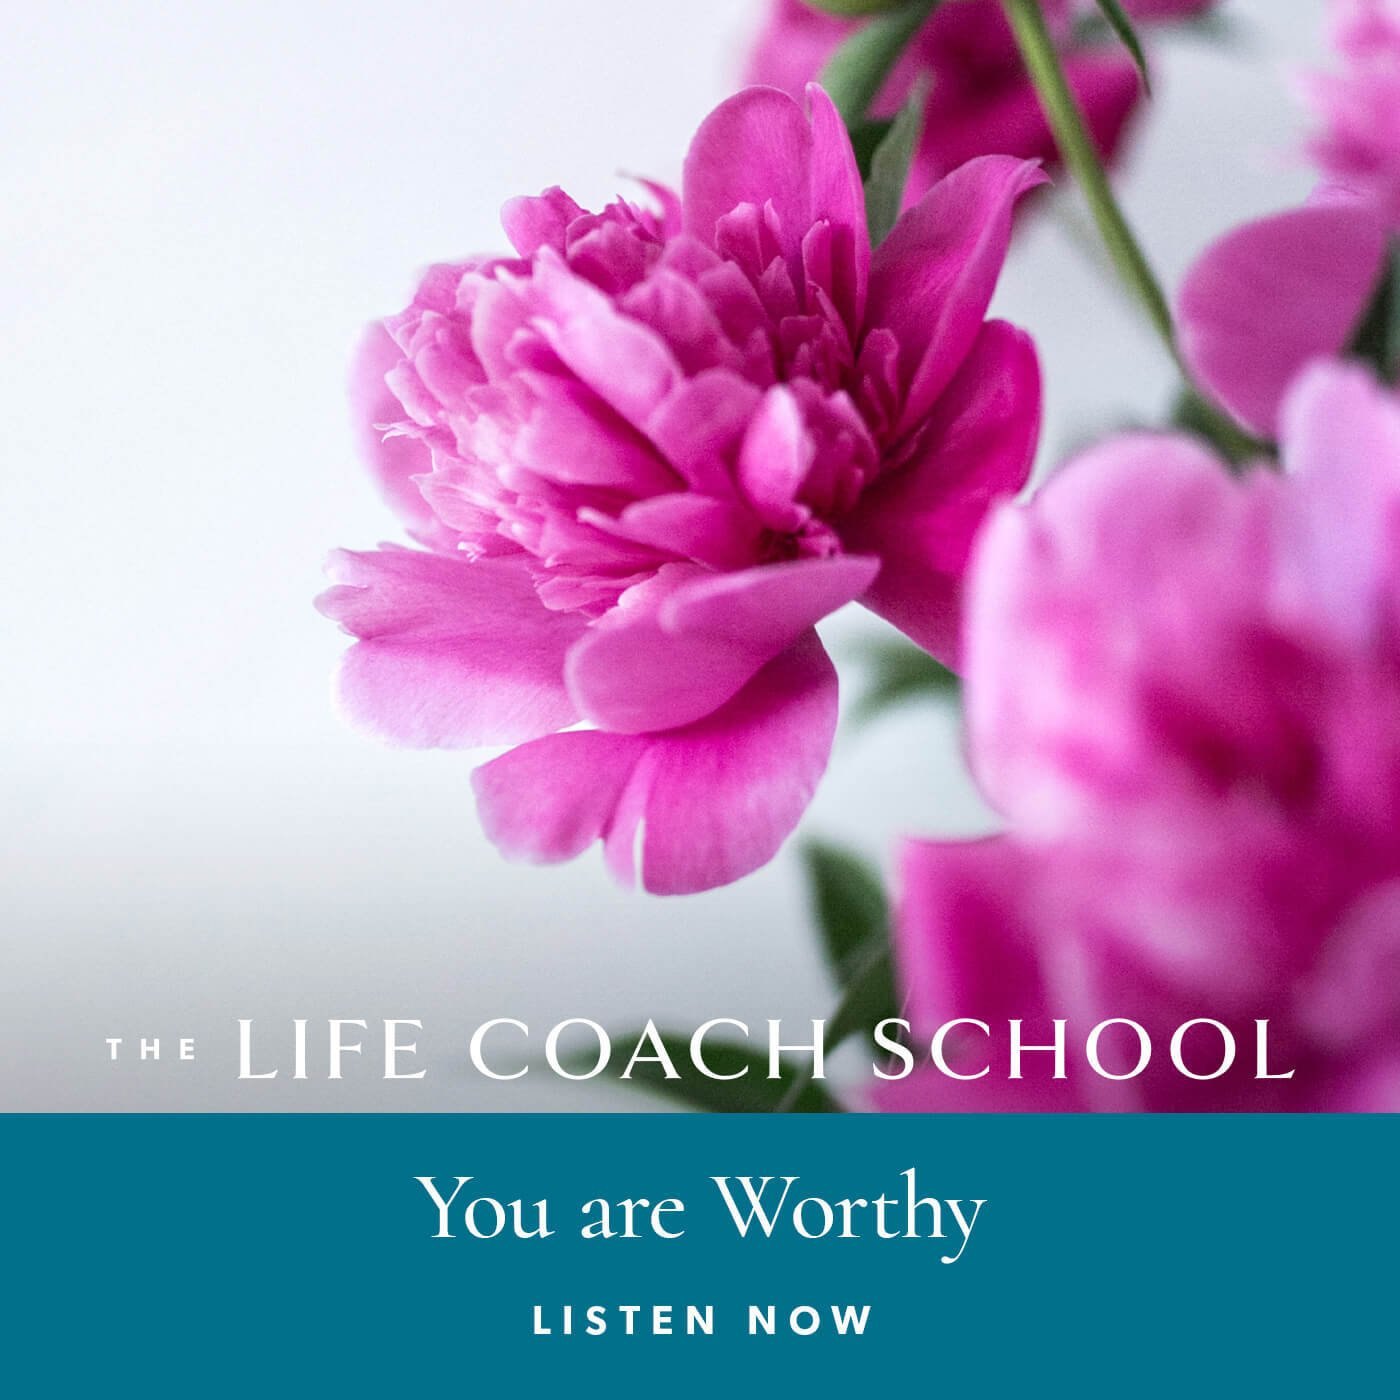 The Life Coach School Podcast with Brooke Castillo | Special Episode | You Are Worthy